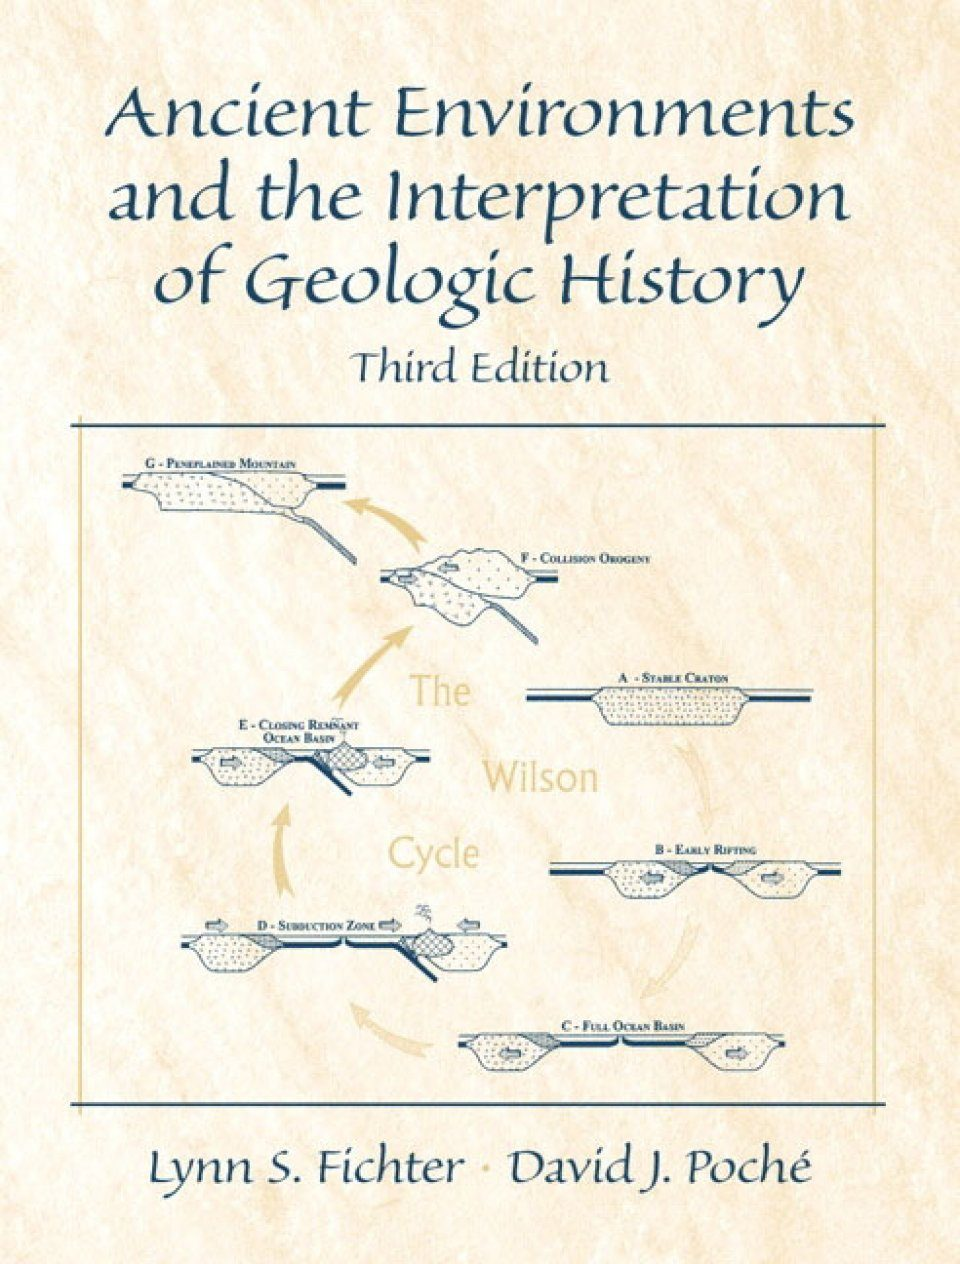 Ancient Environments and the Interpretation of Geological History